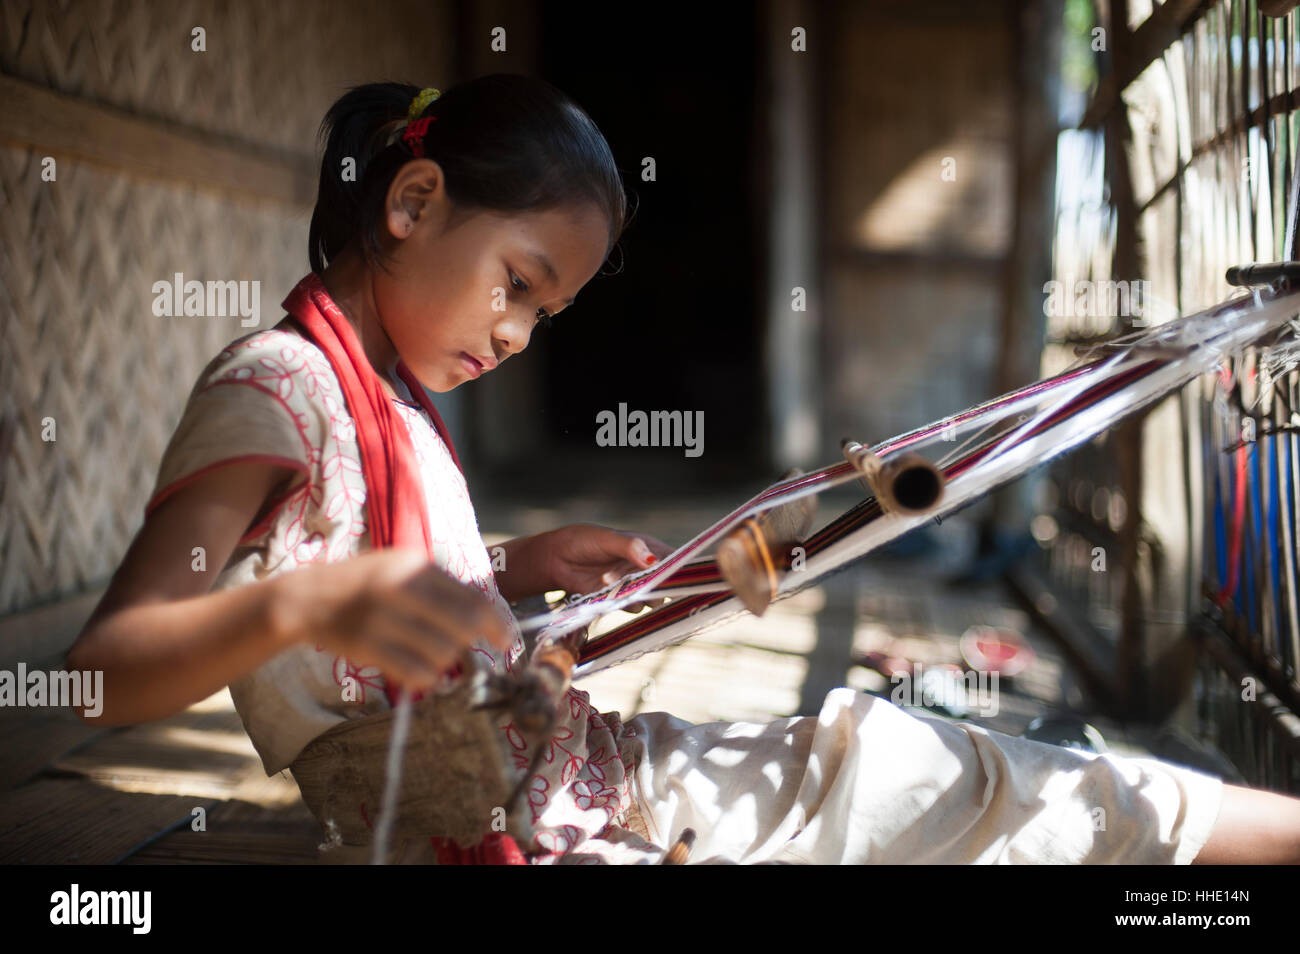 A little girl learns the skill of weaving on a handloom, Chittagong Hill Tracts, Bangladesh - Stock Image